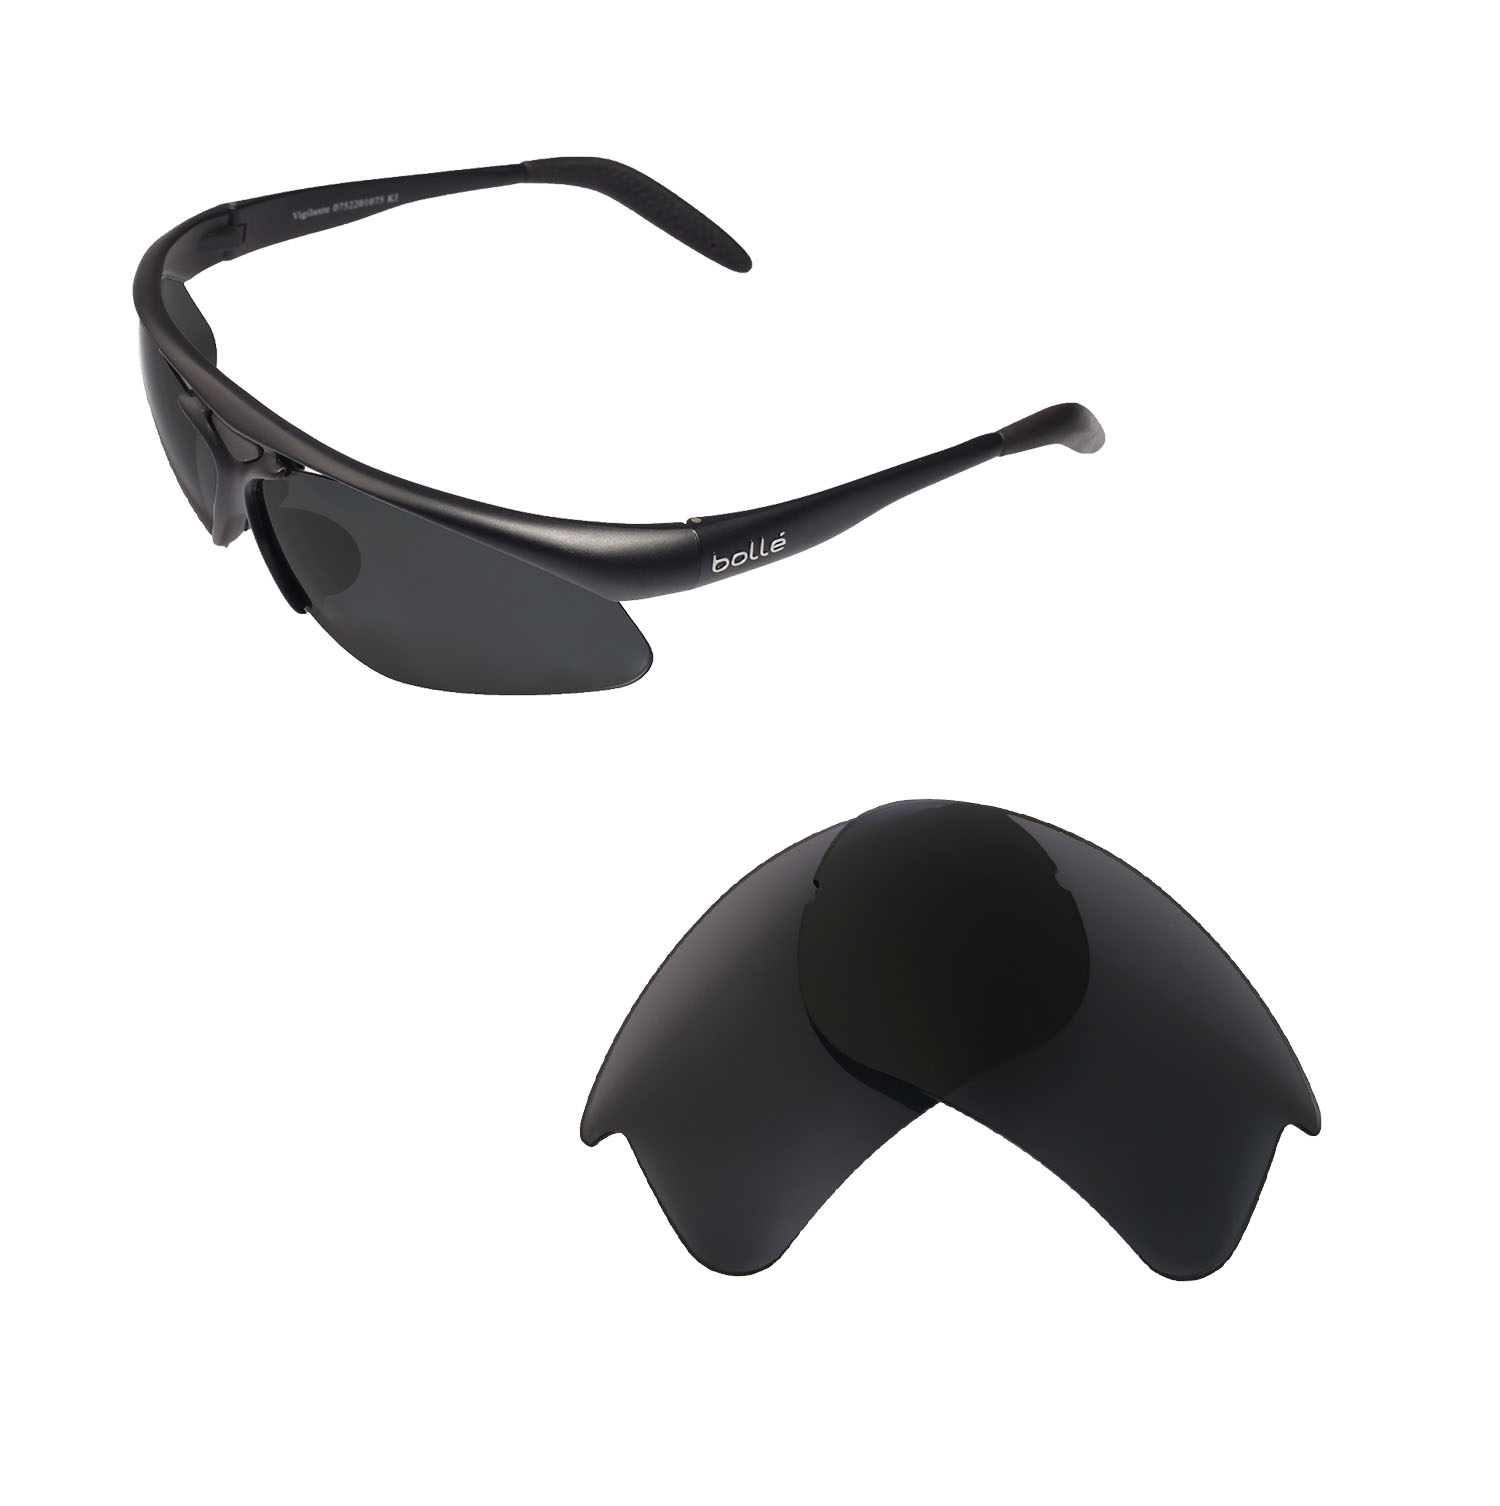 Walleva Sunglasses Multiple Replacement For About Options Lenses Bolle Vigilante Details qVSzUpGM